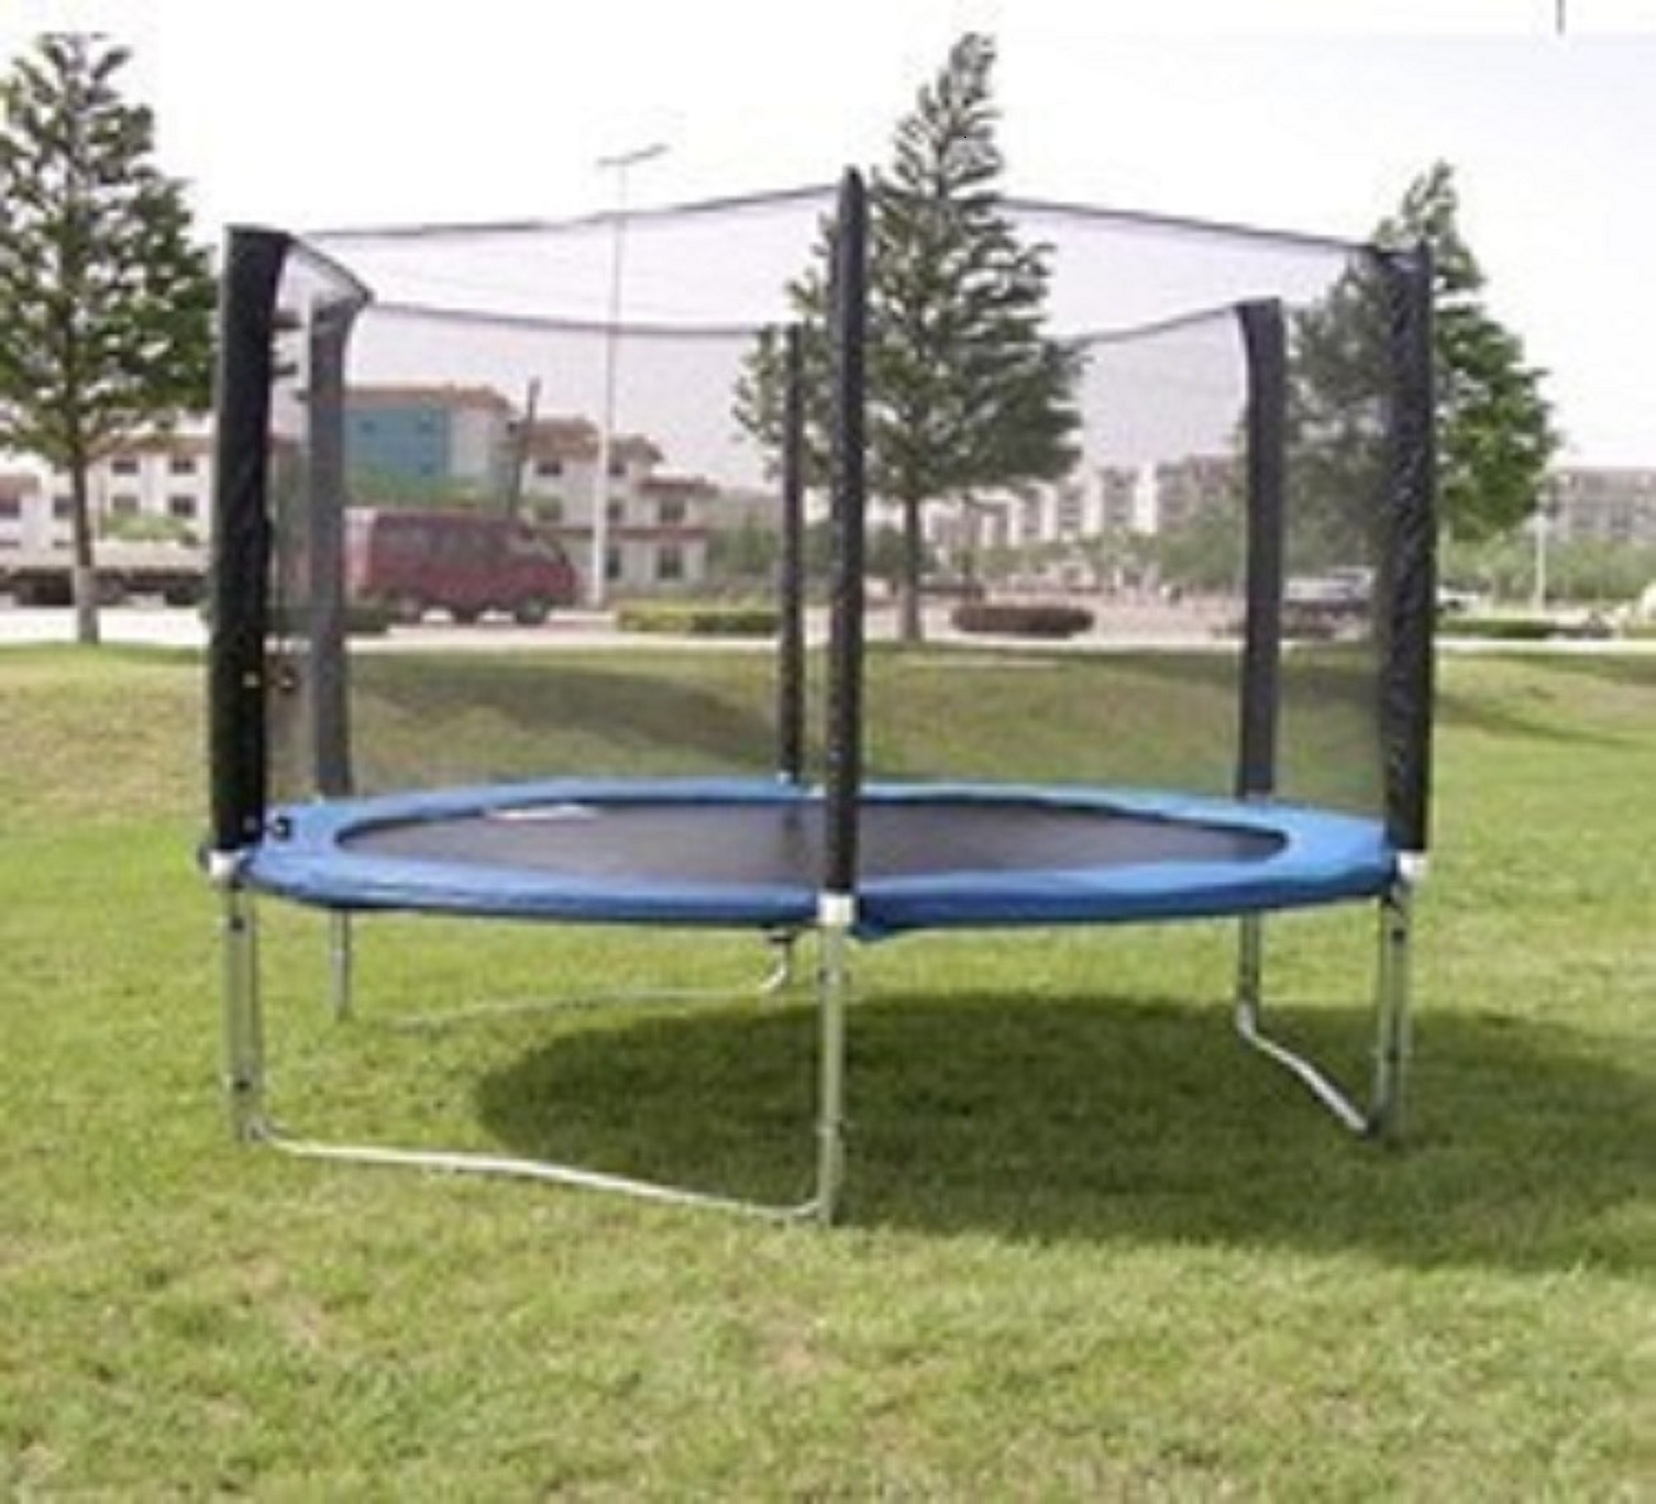 Exacme 8 Ft Trampoline W Safety Pad Enclosure Net All In